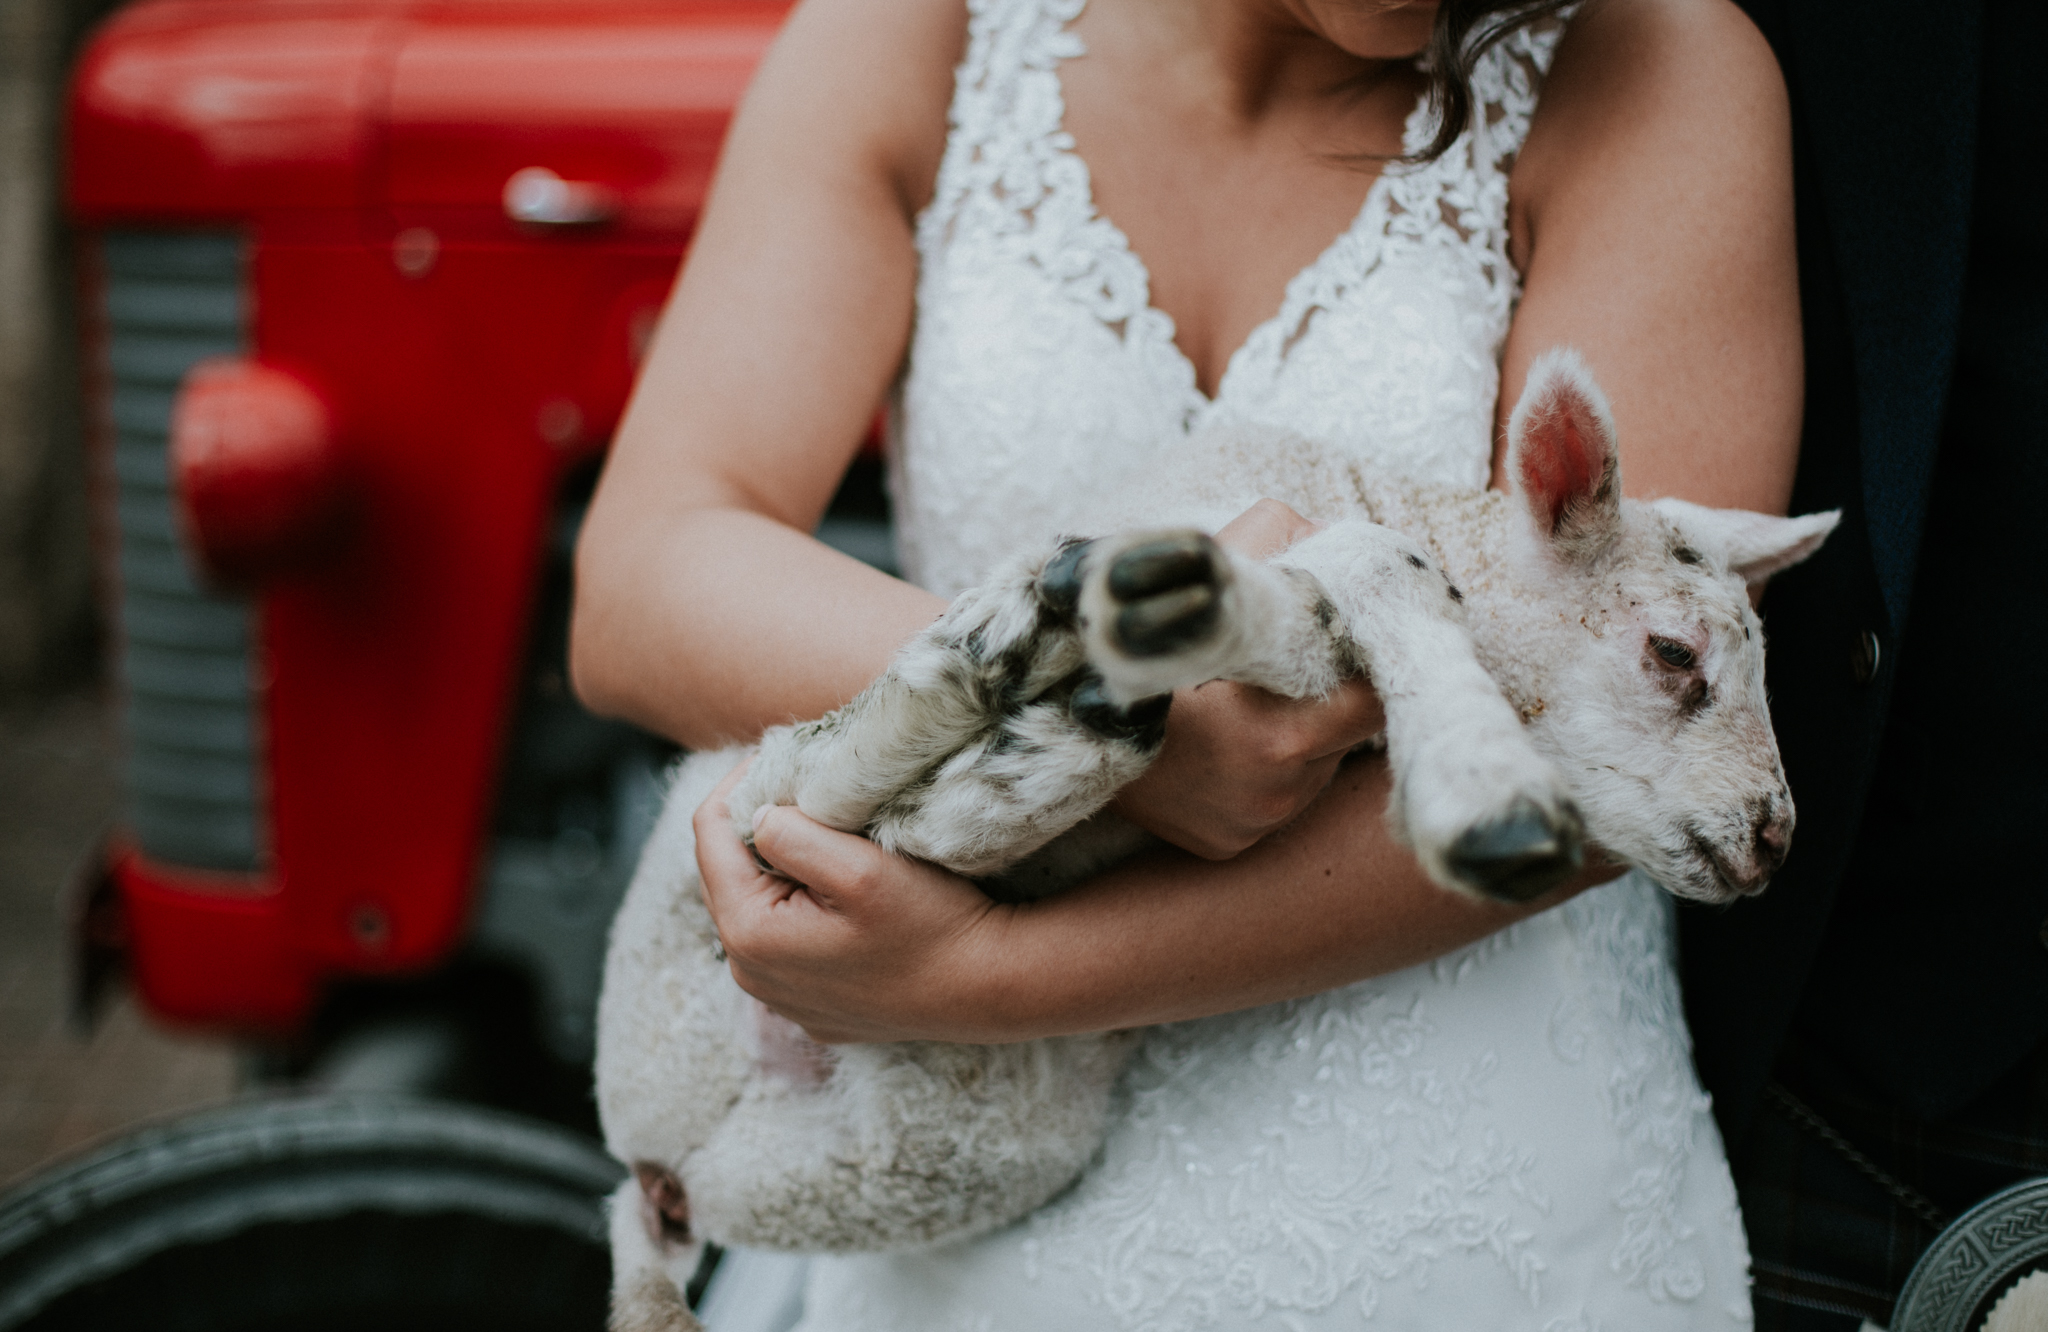 Close up shot of the bride holding the lamb